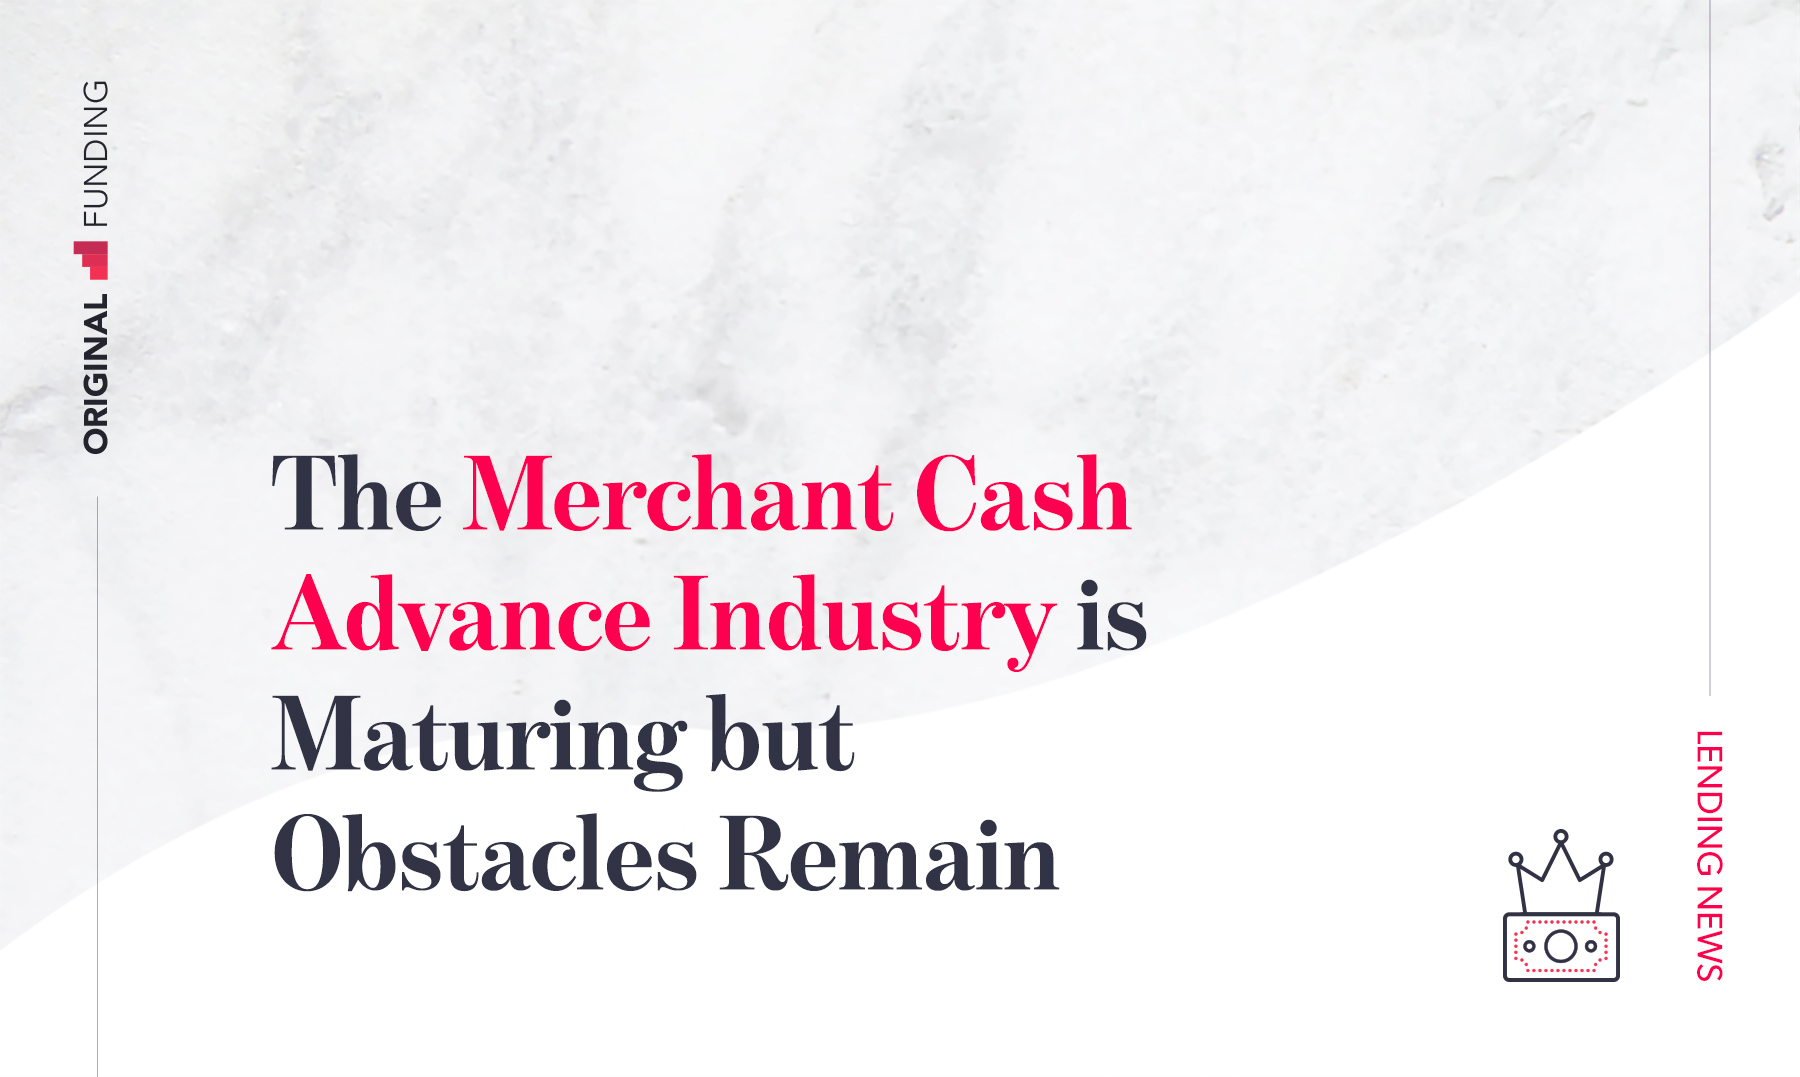 The Merchant Cash Advance Industry is Maturing but Obstacles Remain